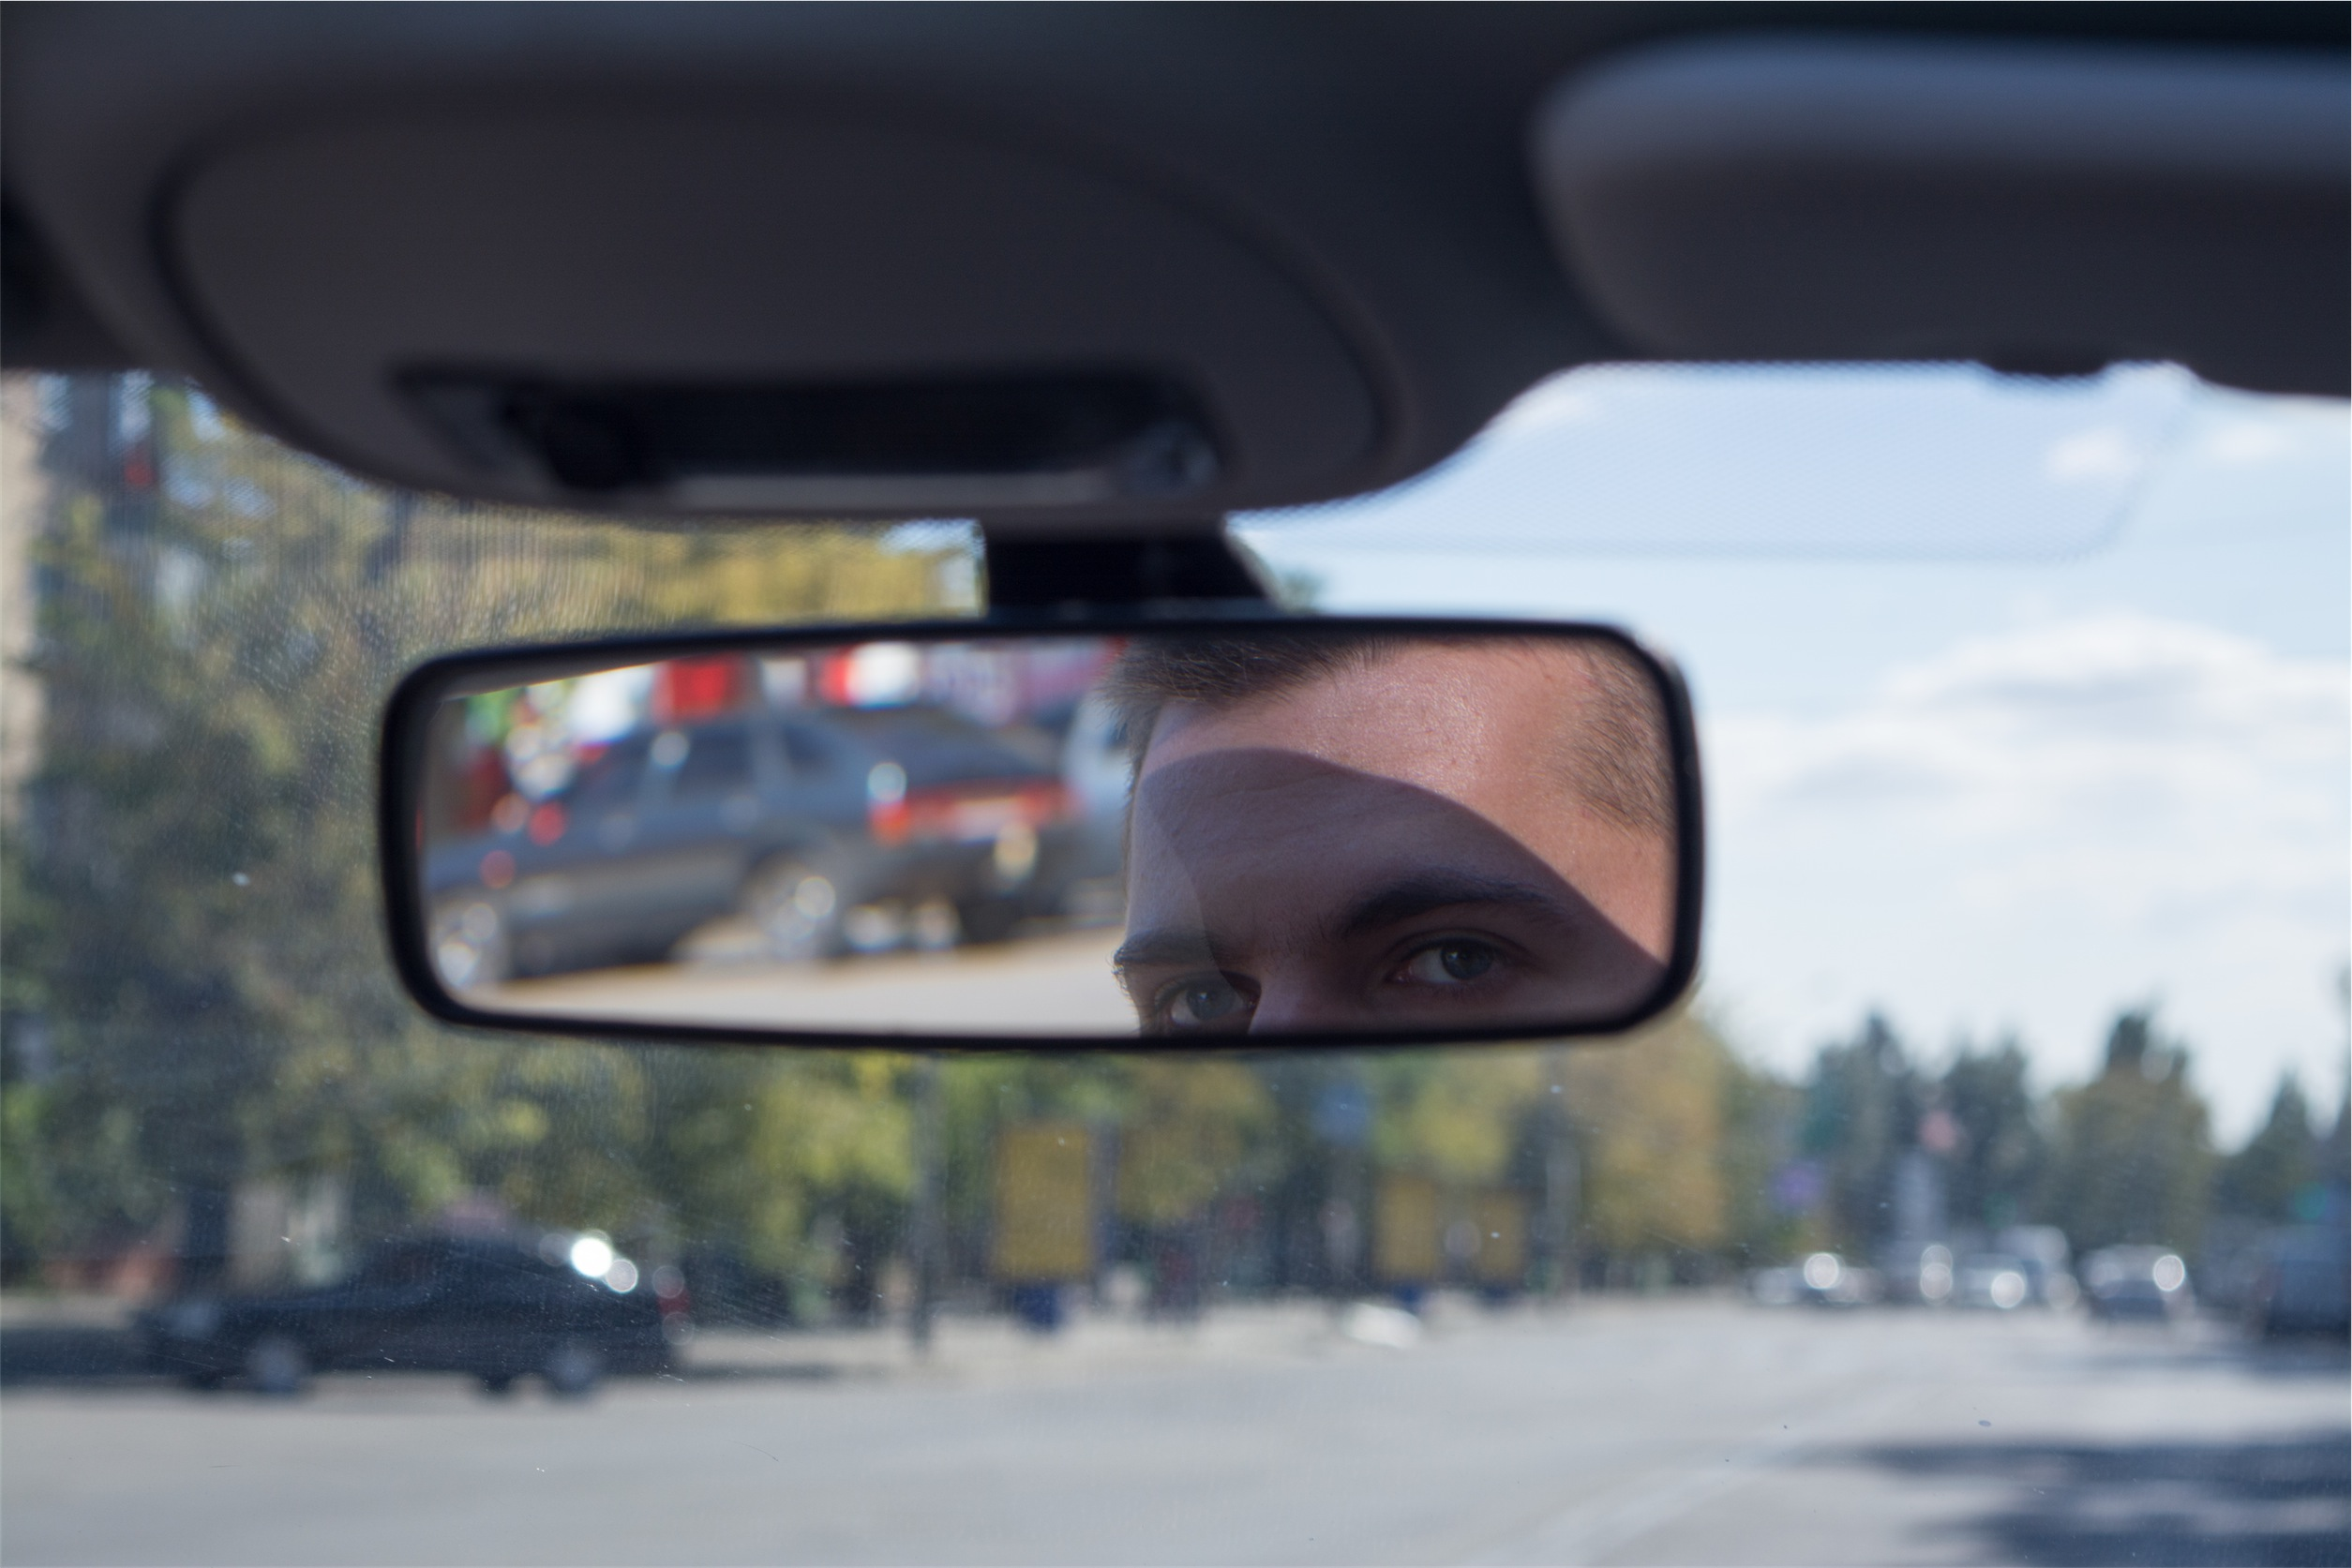 Using a rearview mirror to see